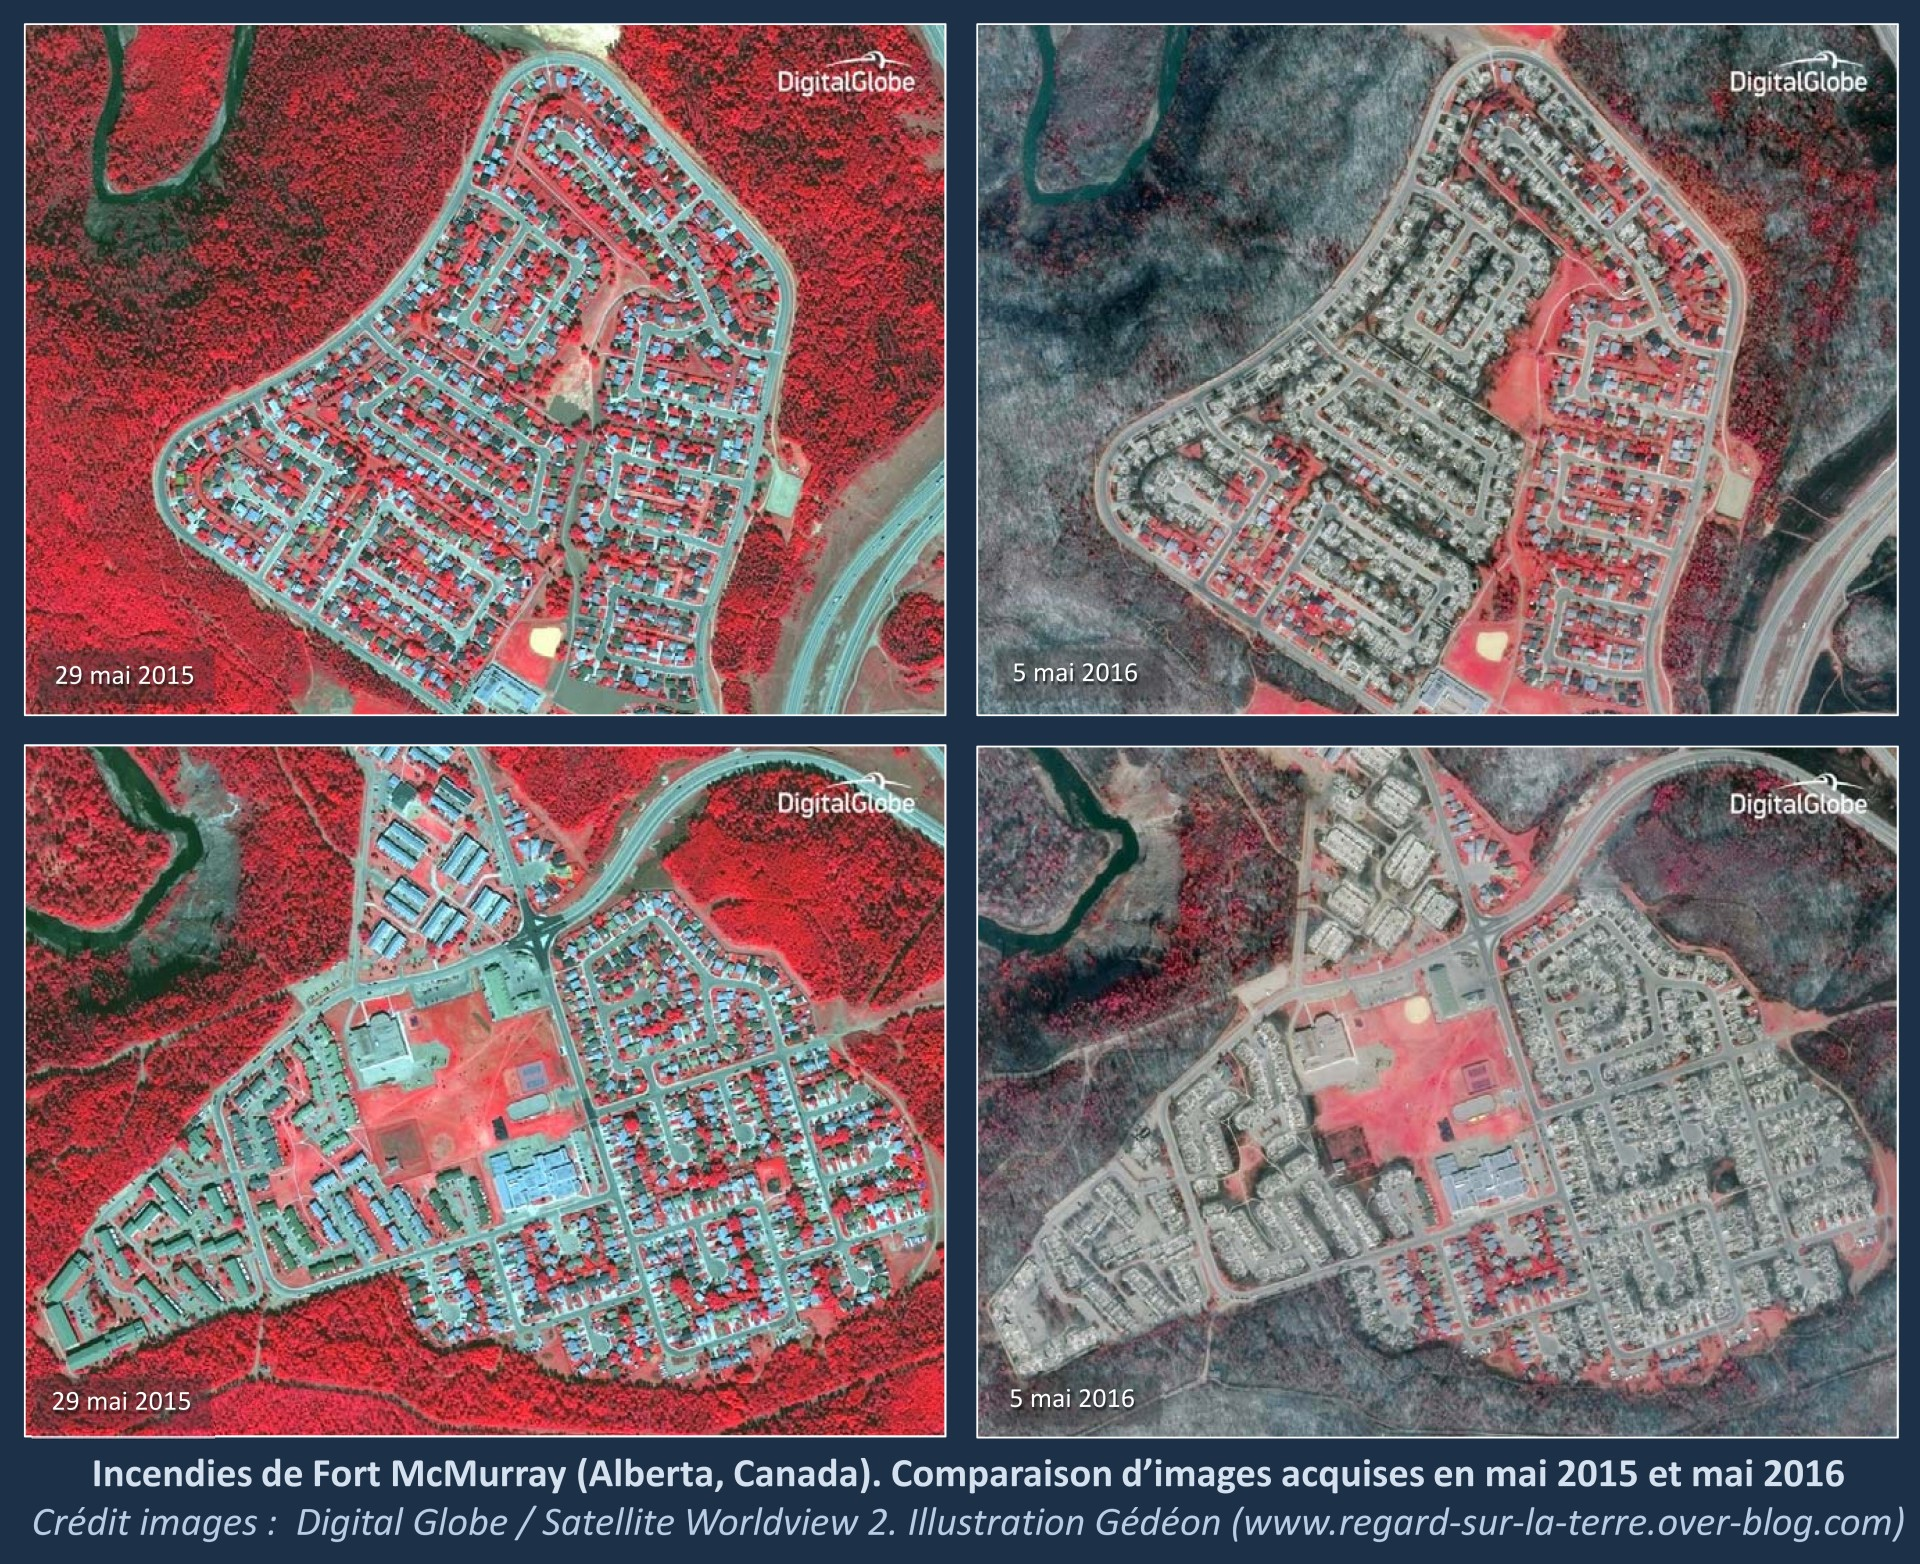 Fort McMurray - Alberta - Incendies - Before - After - Avant - Après - Digital Globe - WorldView-2 - Satellite